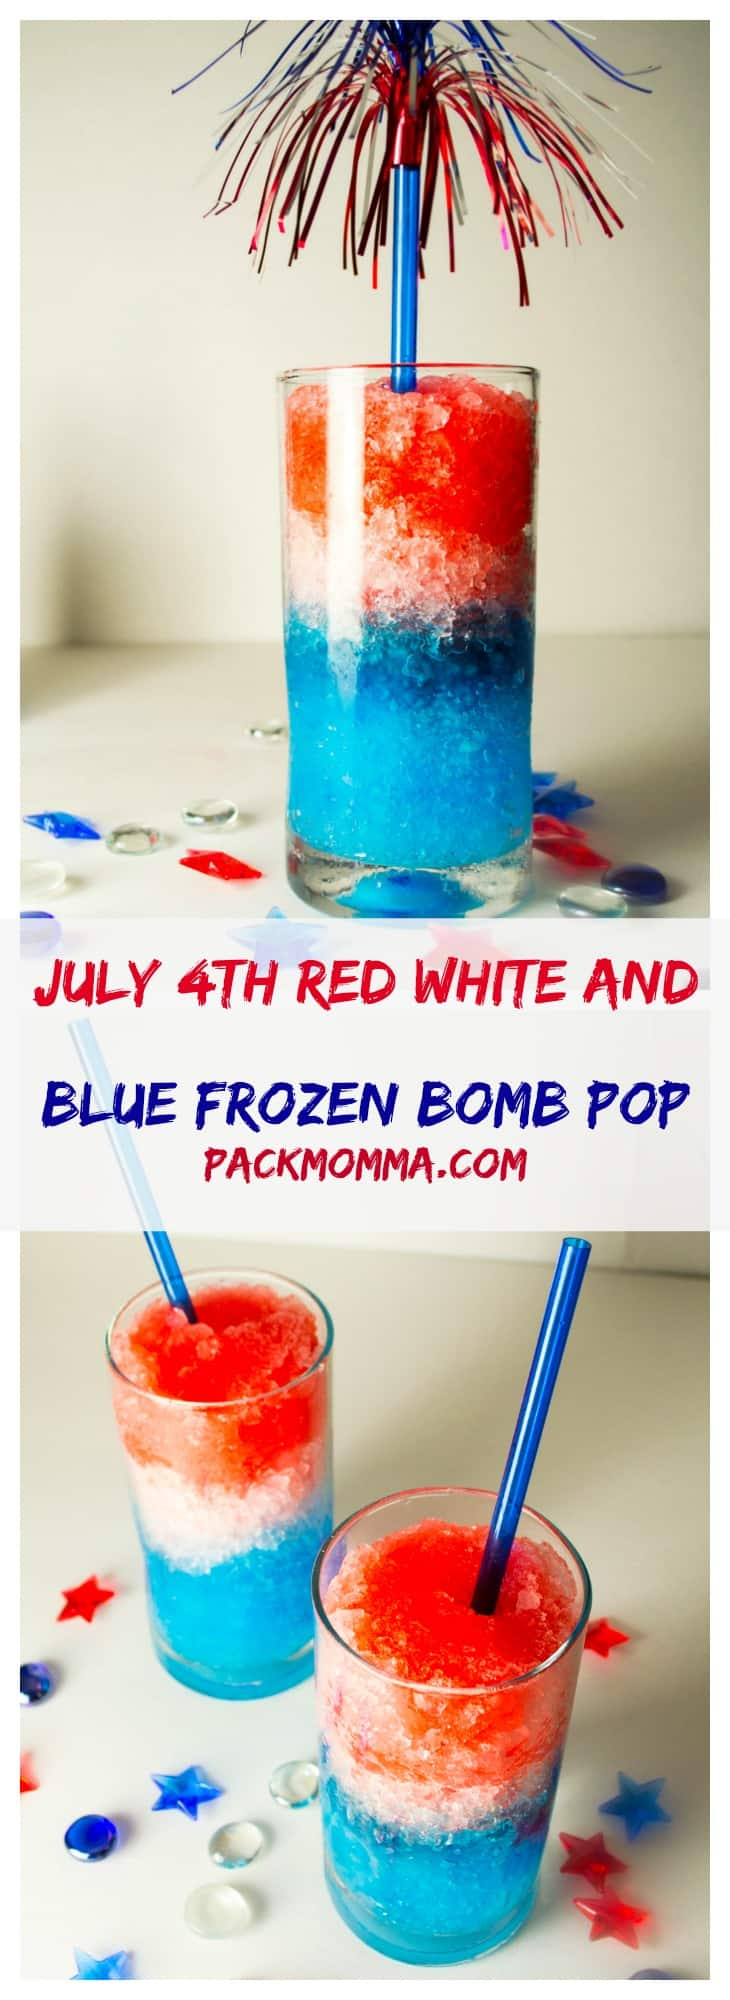 July 4th Red White and Blue Frozen Bomb Pop Coctail | Celebrate Independence Day in style this year with these cool and refreshing July 4th Red White and Blue Frozen Bomb Pop Cocktail. | Pack Momma | https://www.packmomma.com